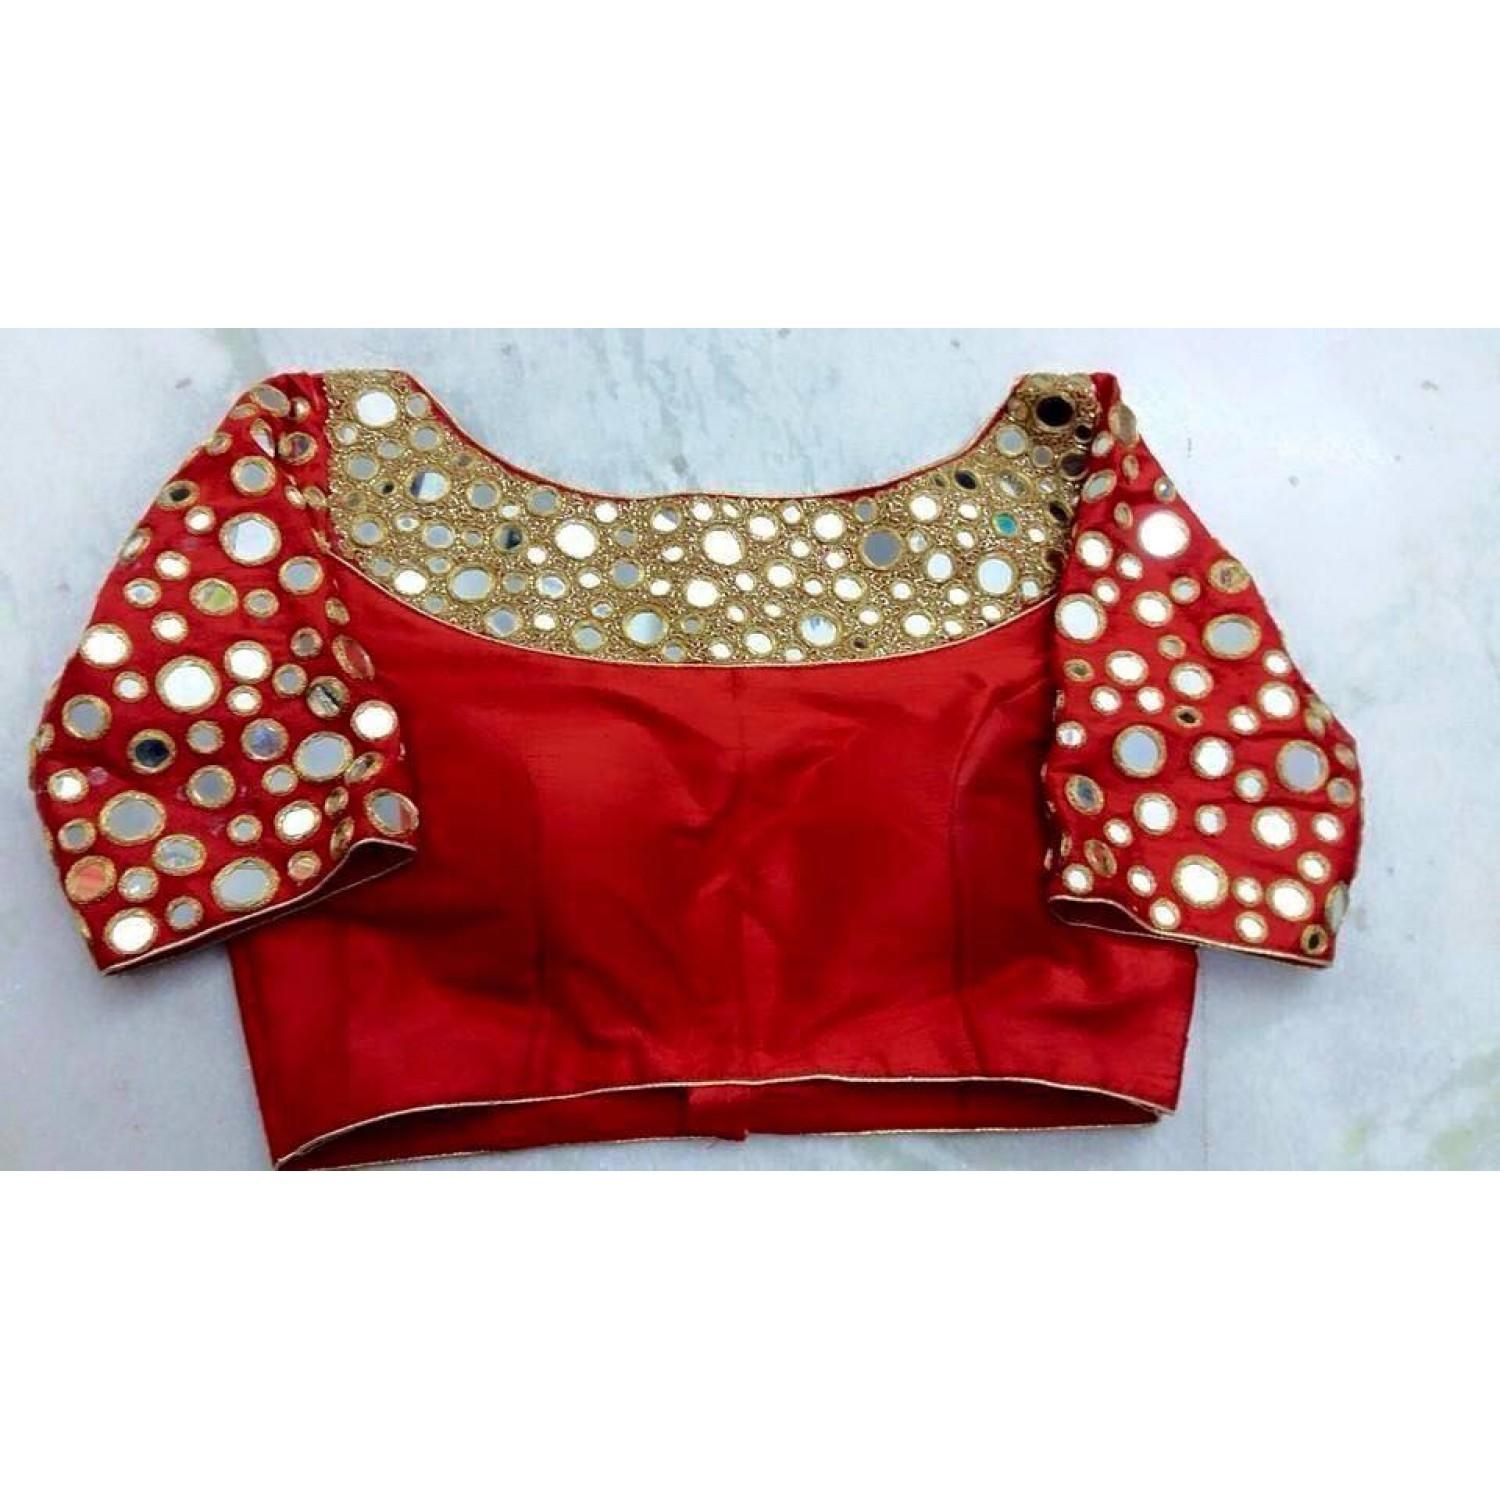 Latest Bridal Readymade Blouses Online Shopping India With Low Inside Online Shopping Mirror (Image 10 of 20)